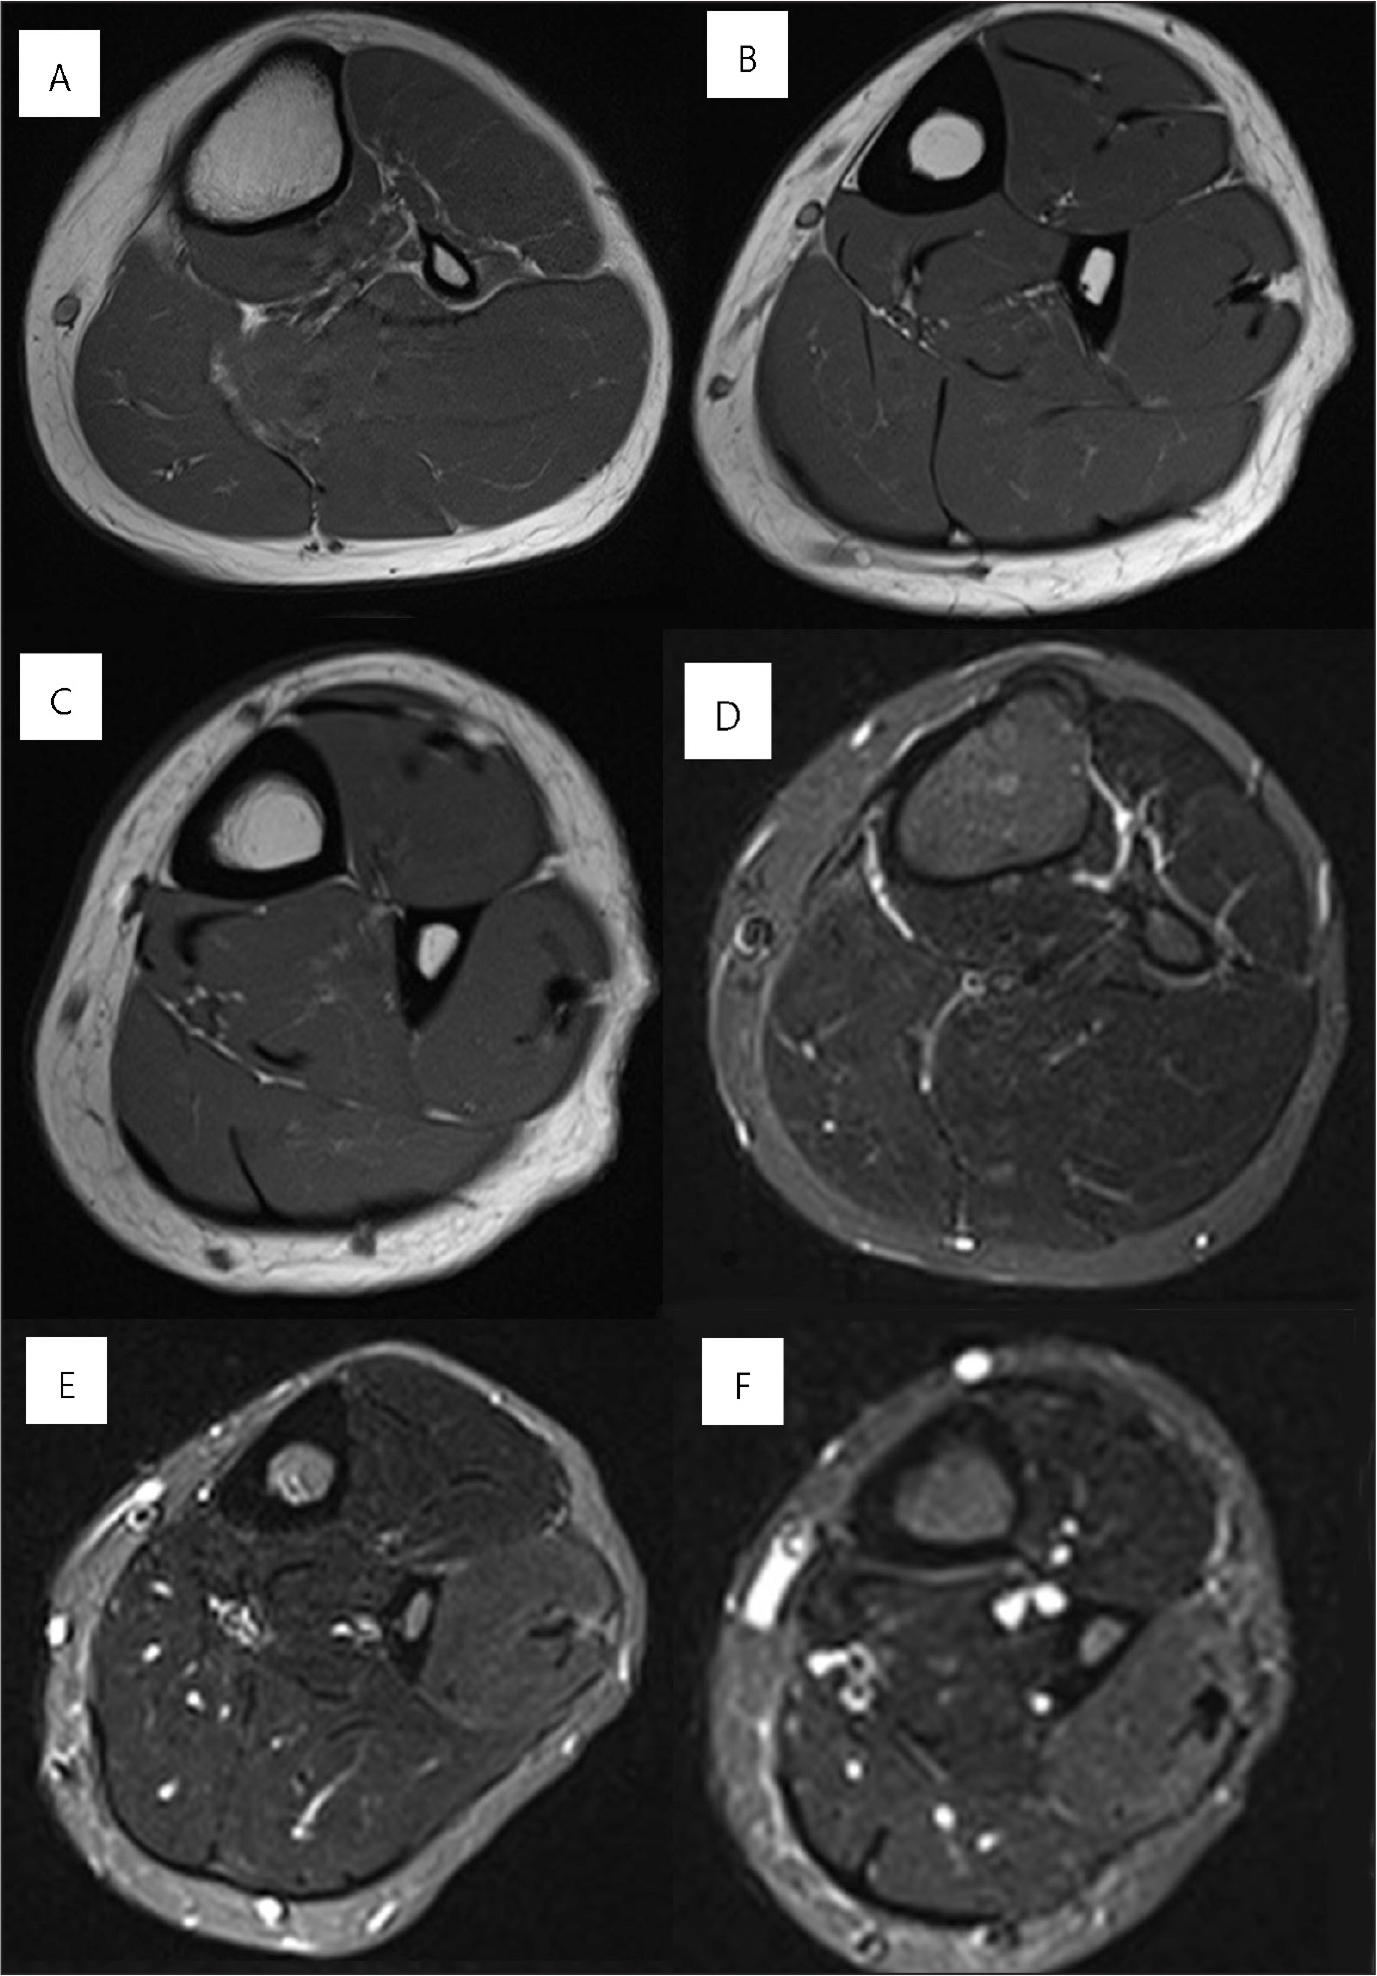 Preexercise axial magnetic resonance images of the proximal calf (A), mid-calf (B), and distal calf (C). Postexercise axial magnetic resonance images of the proximal calf (D), mid-calf (E), and distal calf (F). The lateral compartment of the mid-calf to the distal calf, where the patient felt pain, showed significant high signal intensity. However, the proximal part of the lateral compartment, where the patient had no pain, did not show high signal intensity.